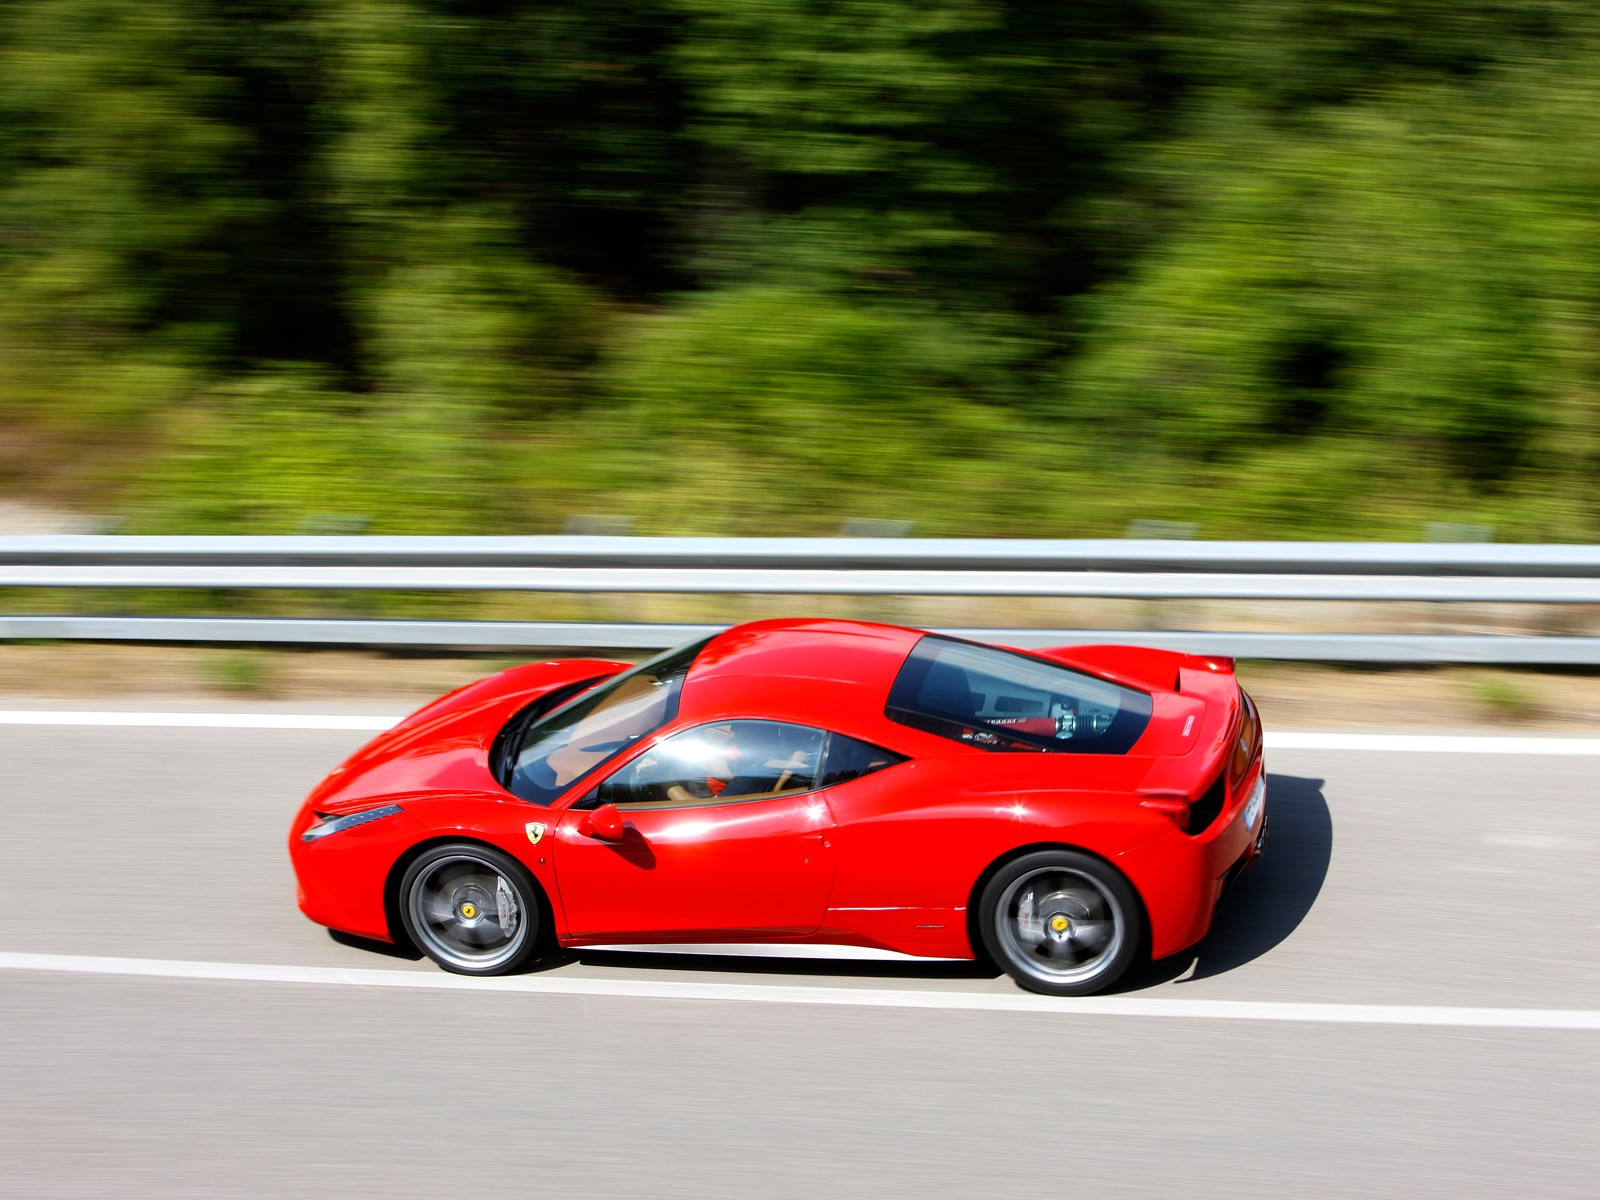 2010 ferrari 458 italia ferrari sport coupe supercar review these vanachro Images